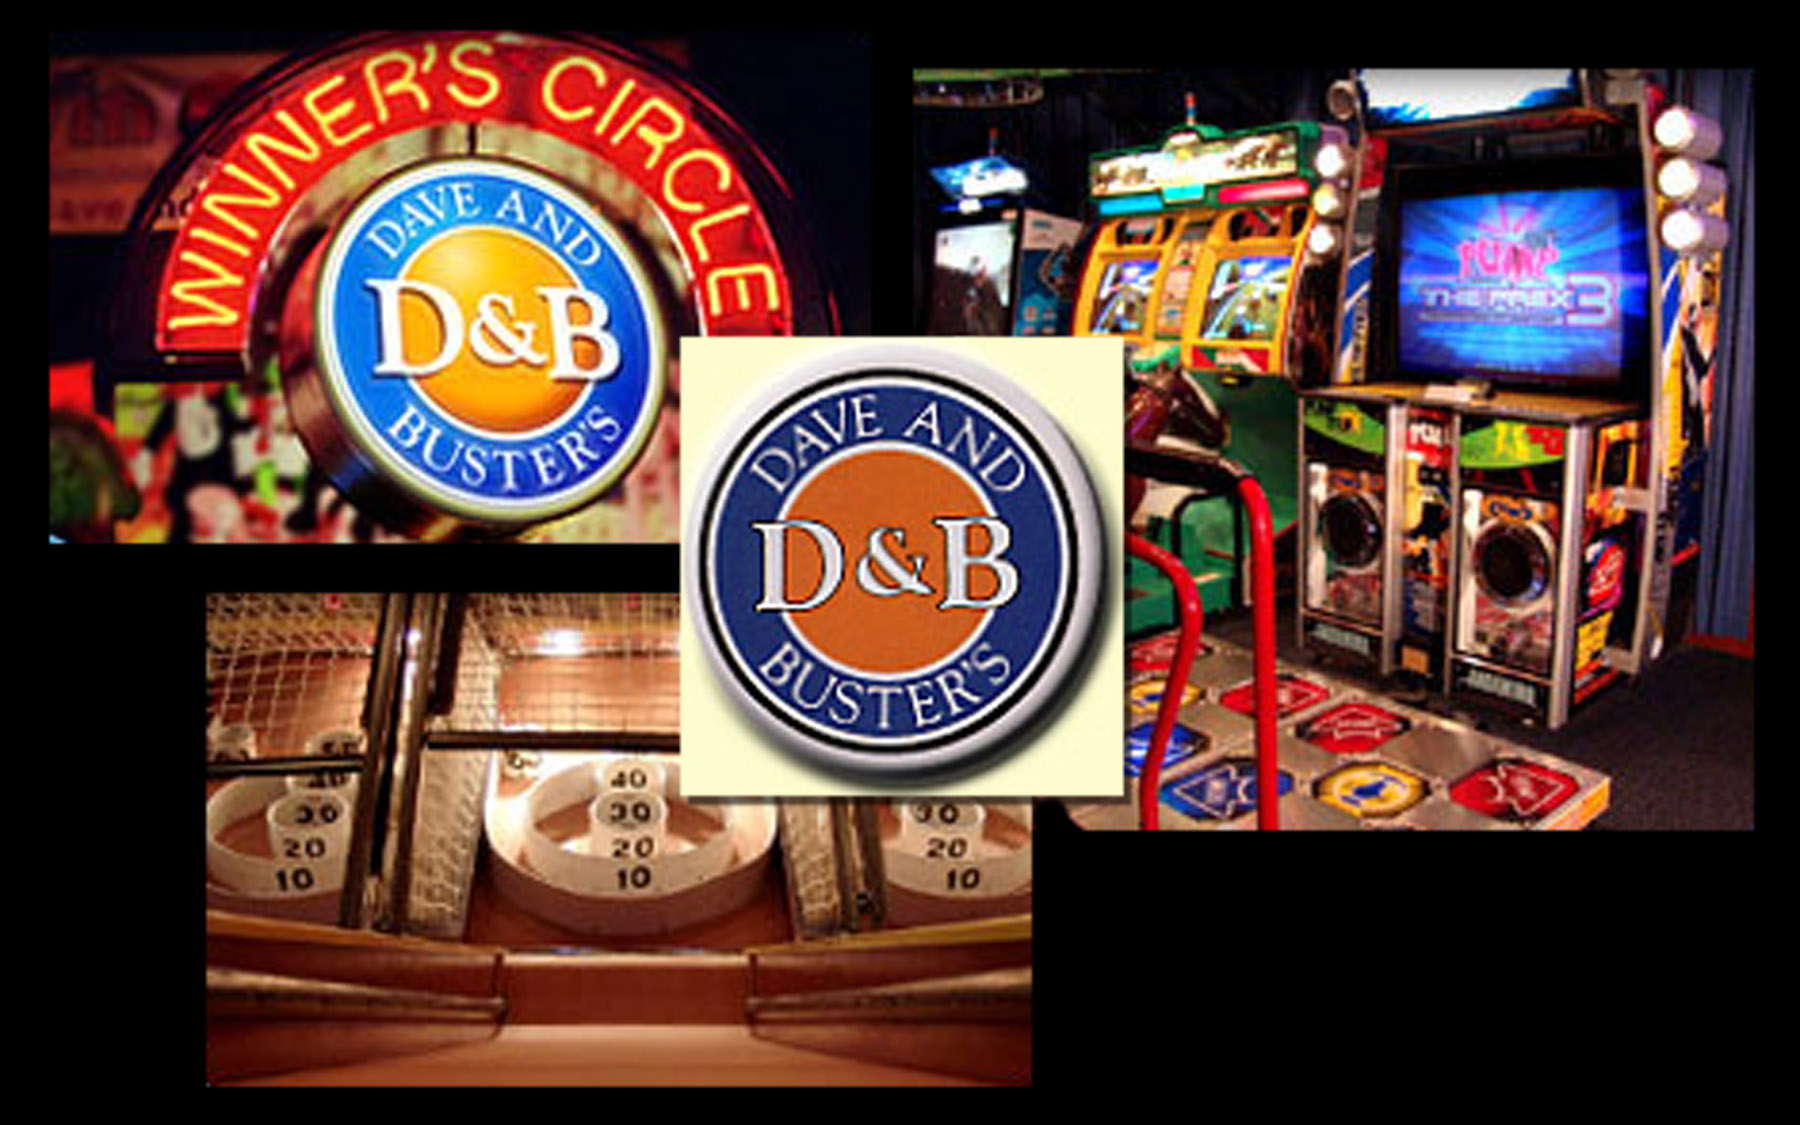 Dave & Buster's in Albuquerque, NM